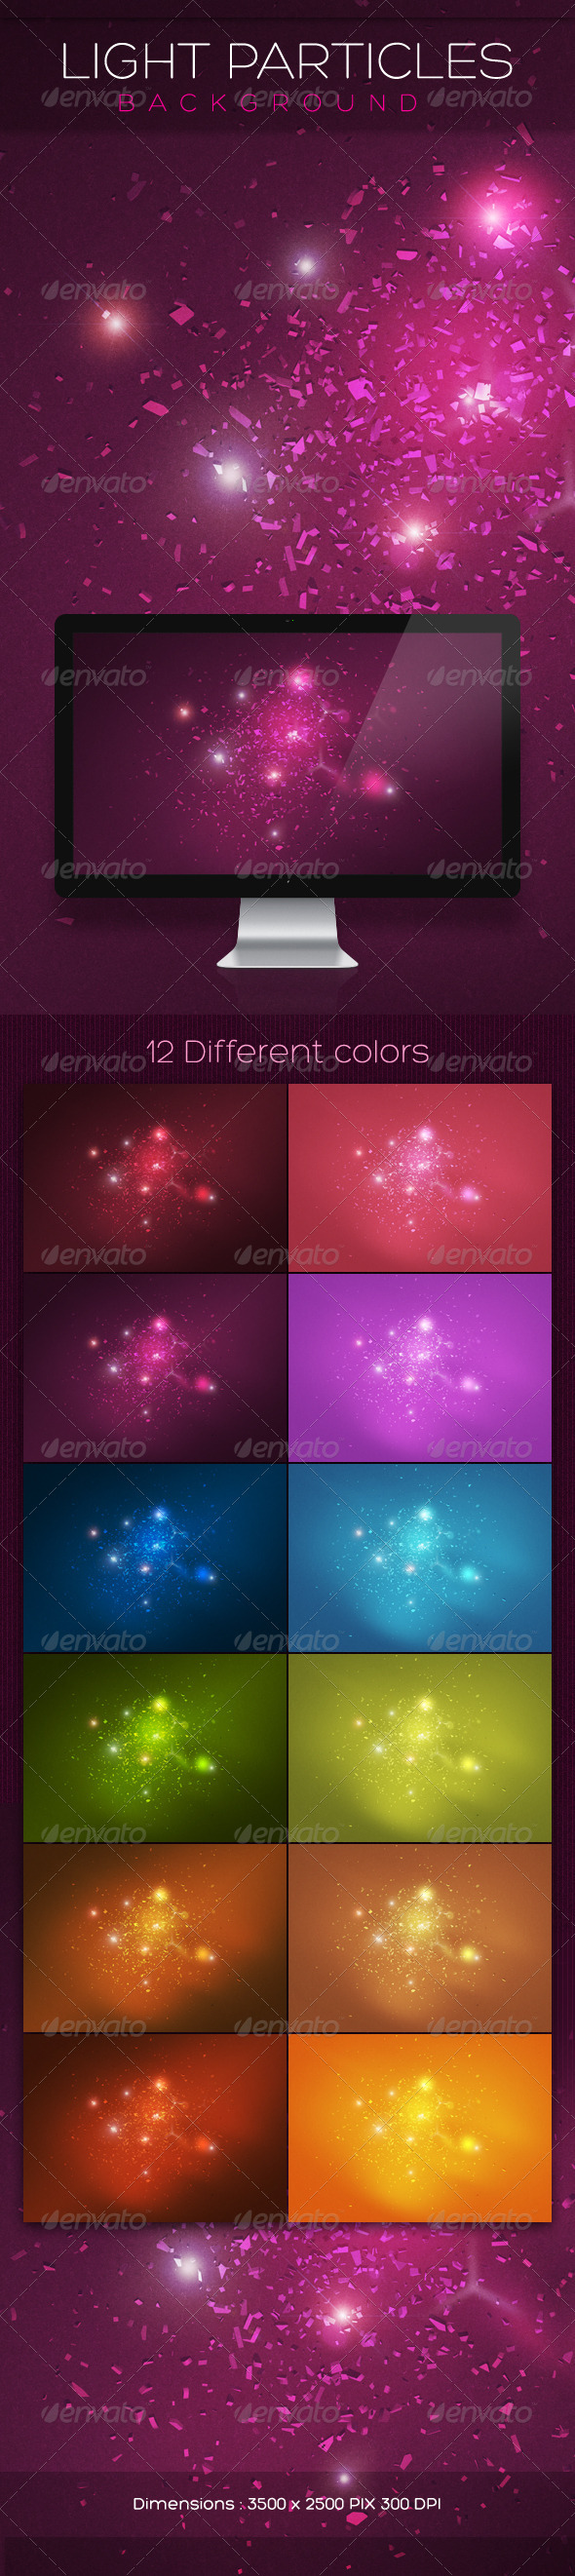 Light Particles Backgrounds - Abstract Backgrounds